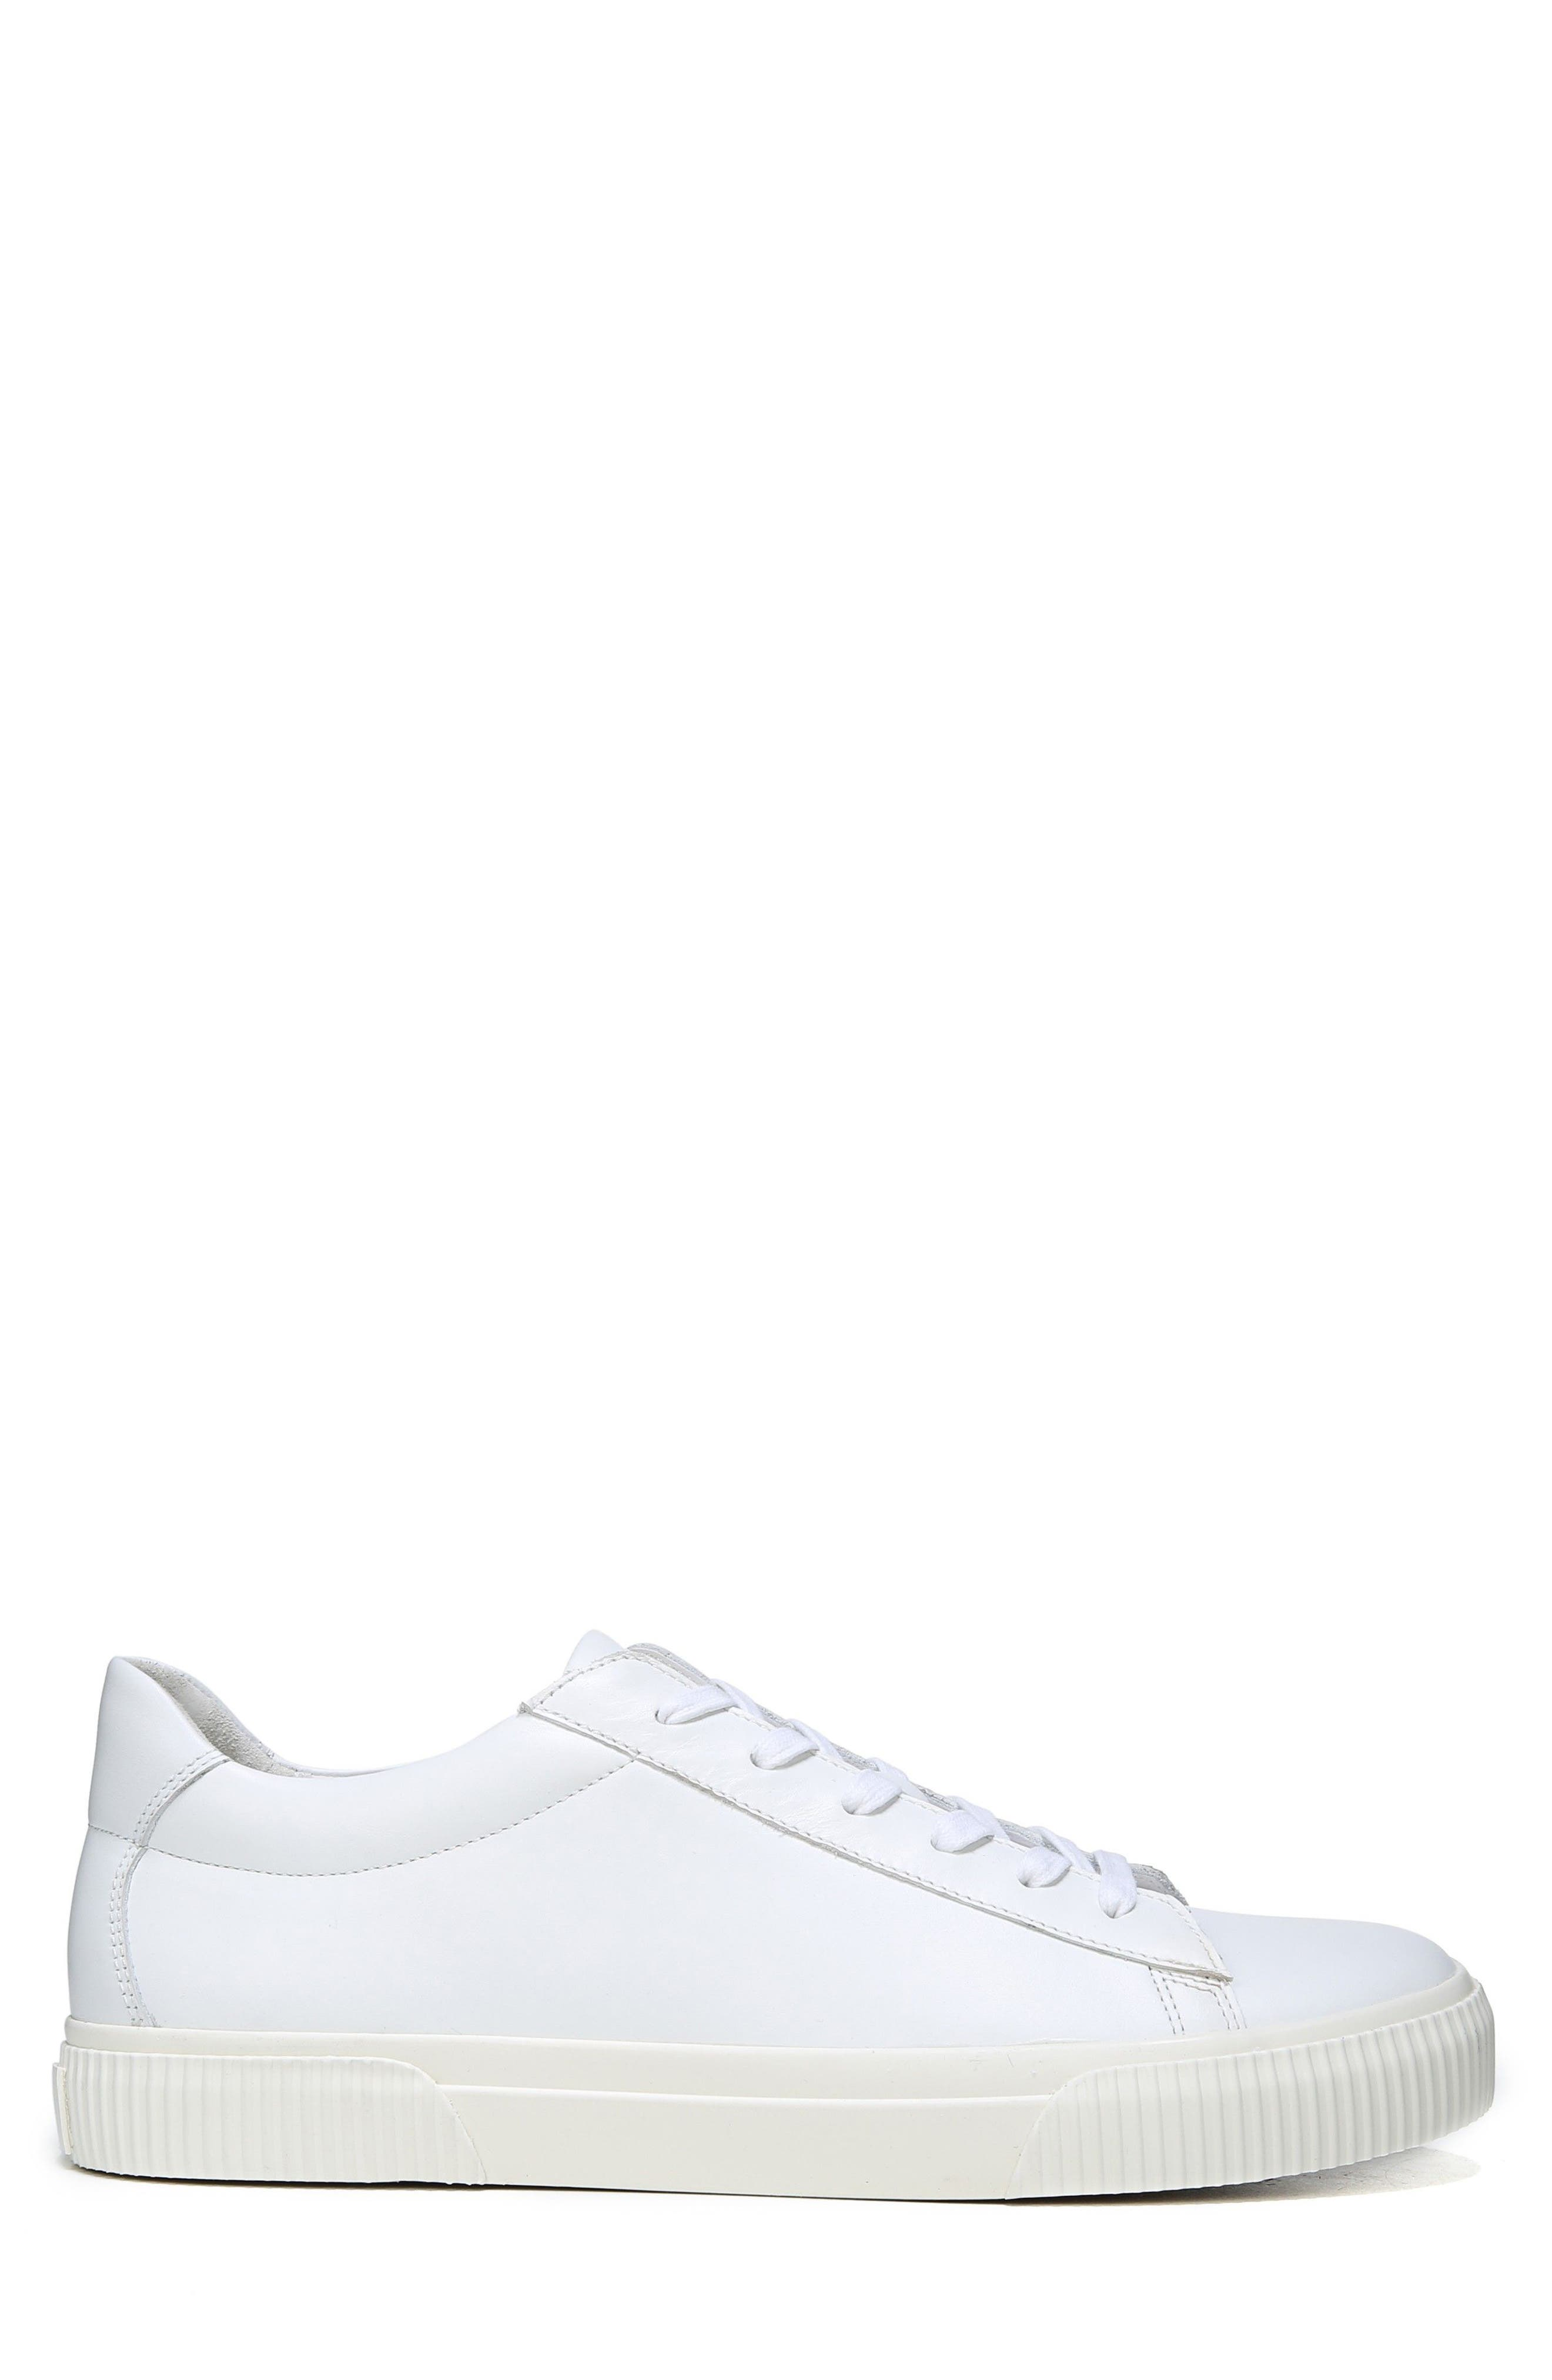 Kurtis Low Top Sneaker,                             Alternate thumbnail 3, color,                             WHITE